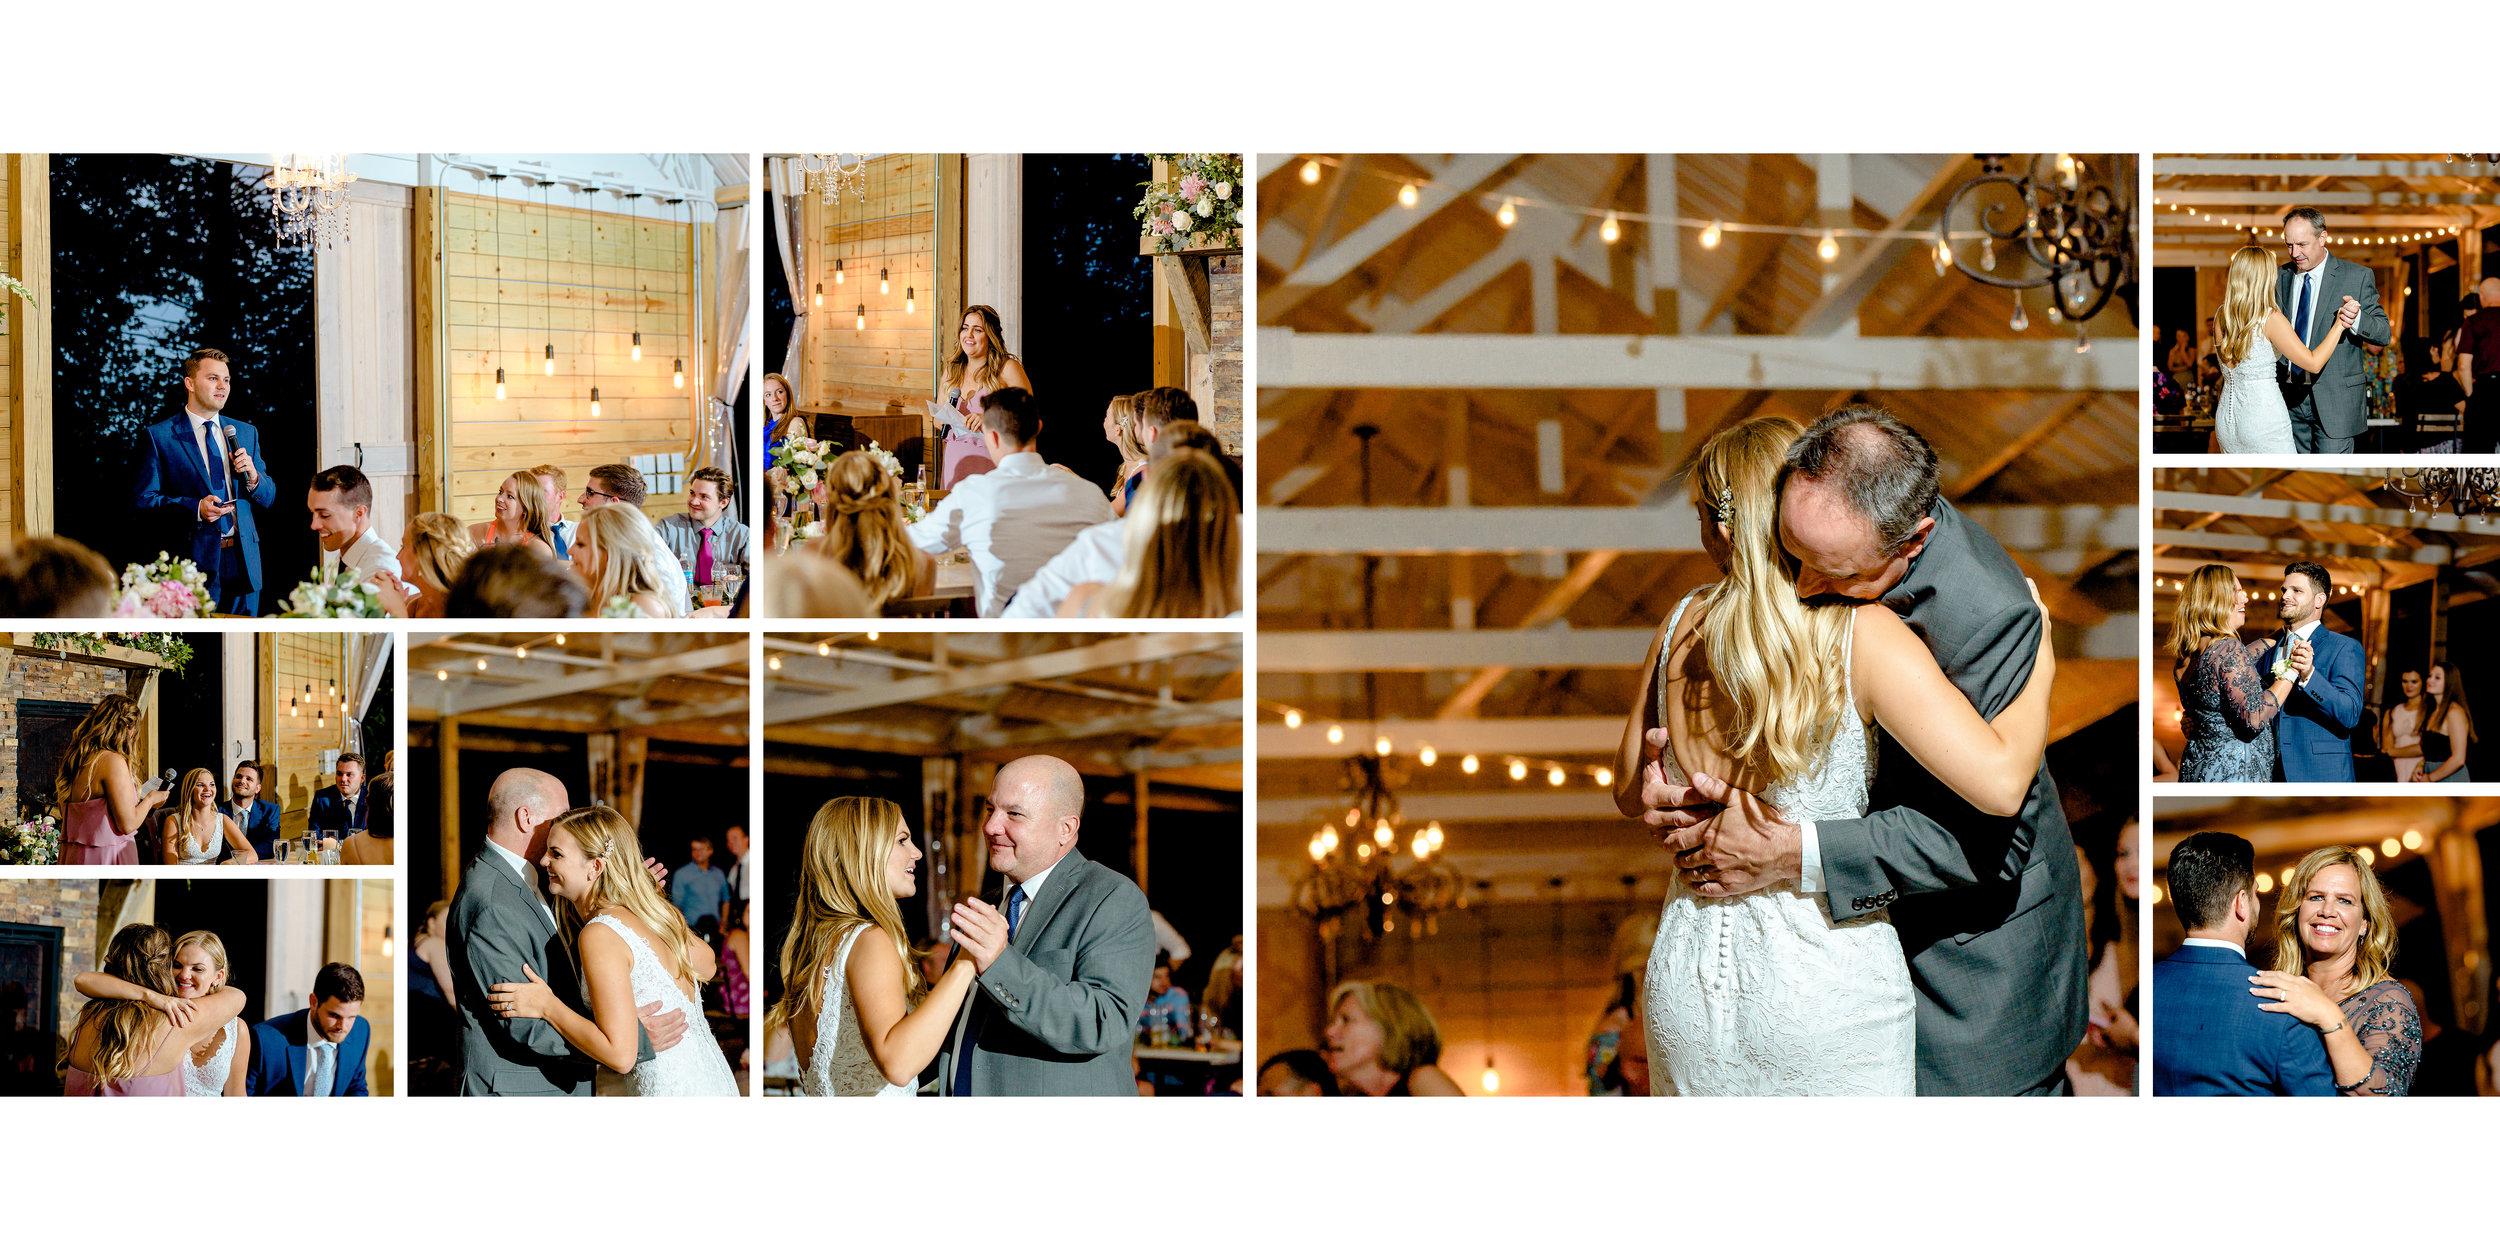 Ashley + Justin - Wedding Album_35.jpg